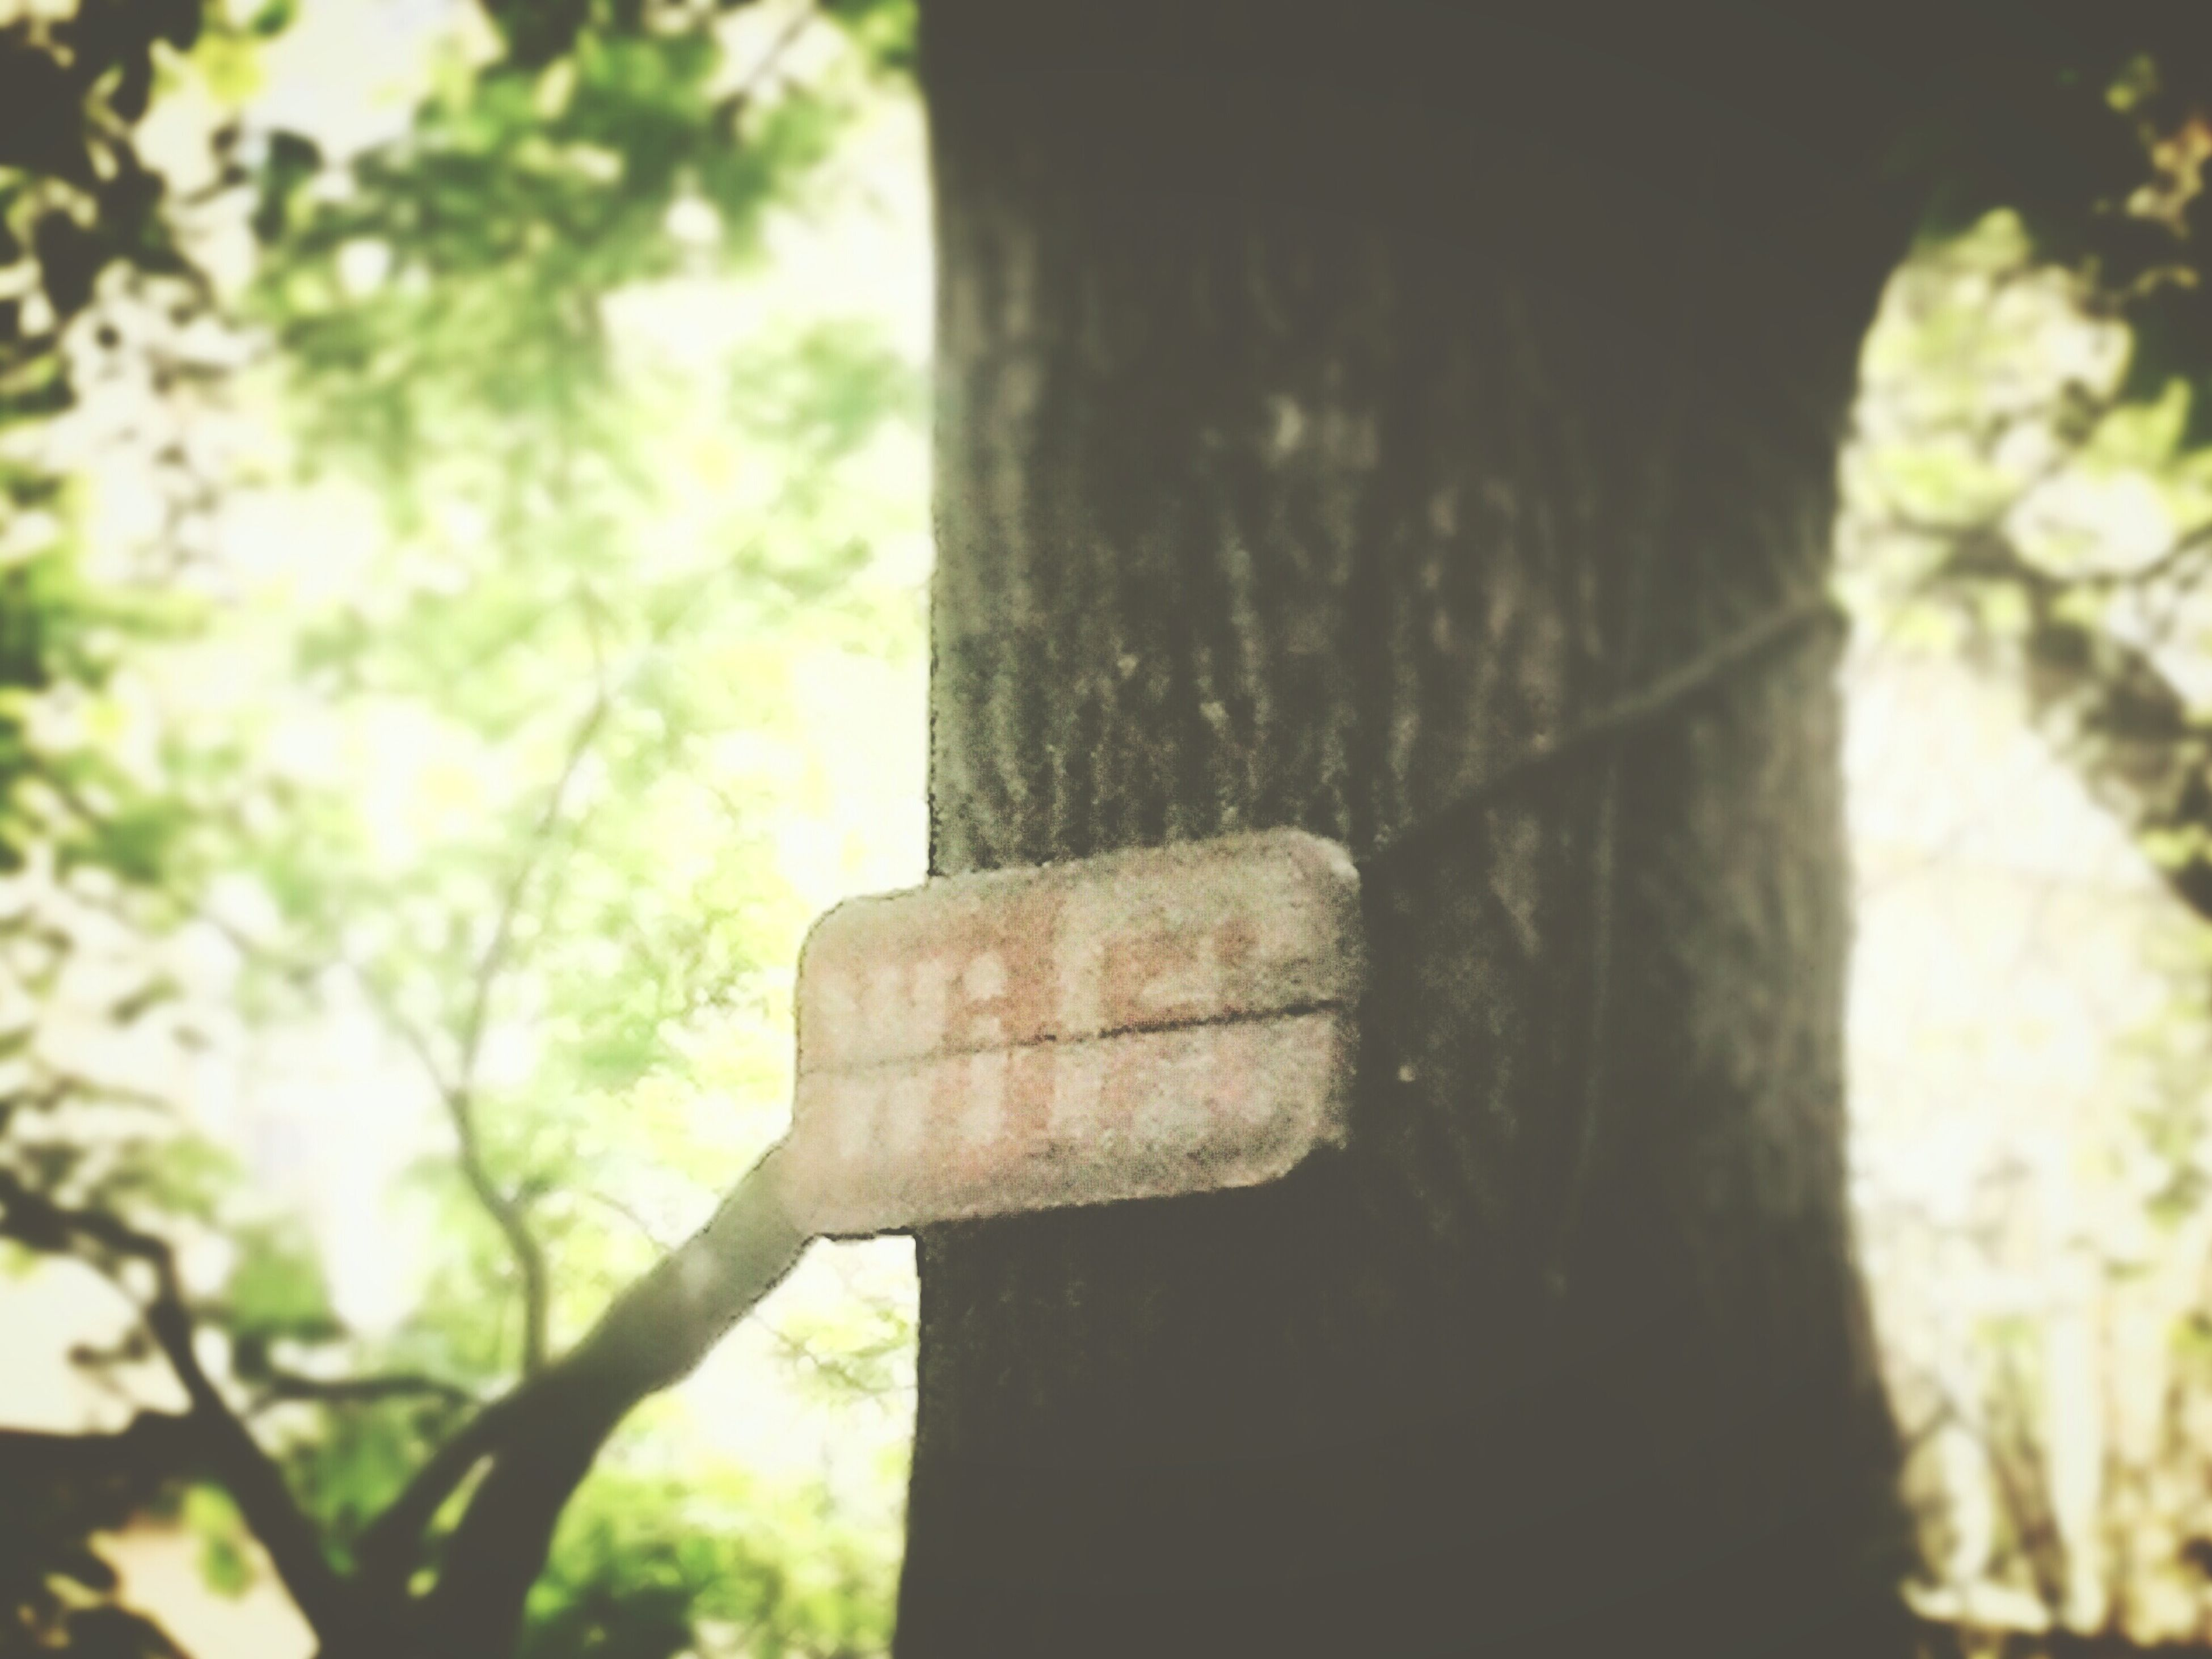 tree, tree trunk, focus on foreground, wood - material, close-up, branch, low angle view, growth, day, sunlight, no people, selective focus, nature, outdoors, forest, textured, old, wooden, part of, tranquility